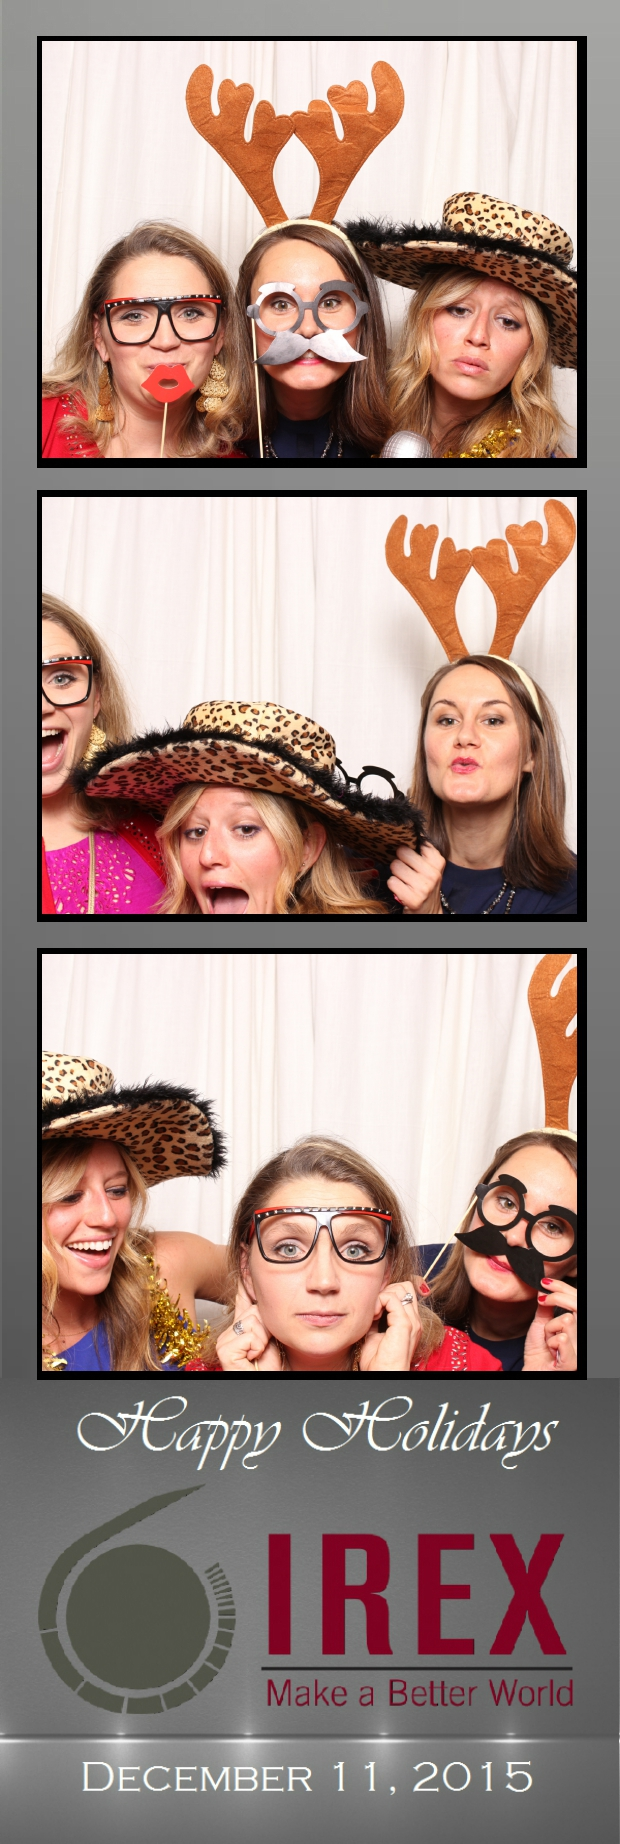 Guest House Events Photo Booth Strips IREX (31).jpg